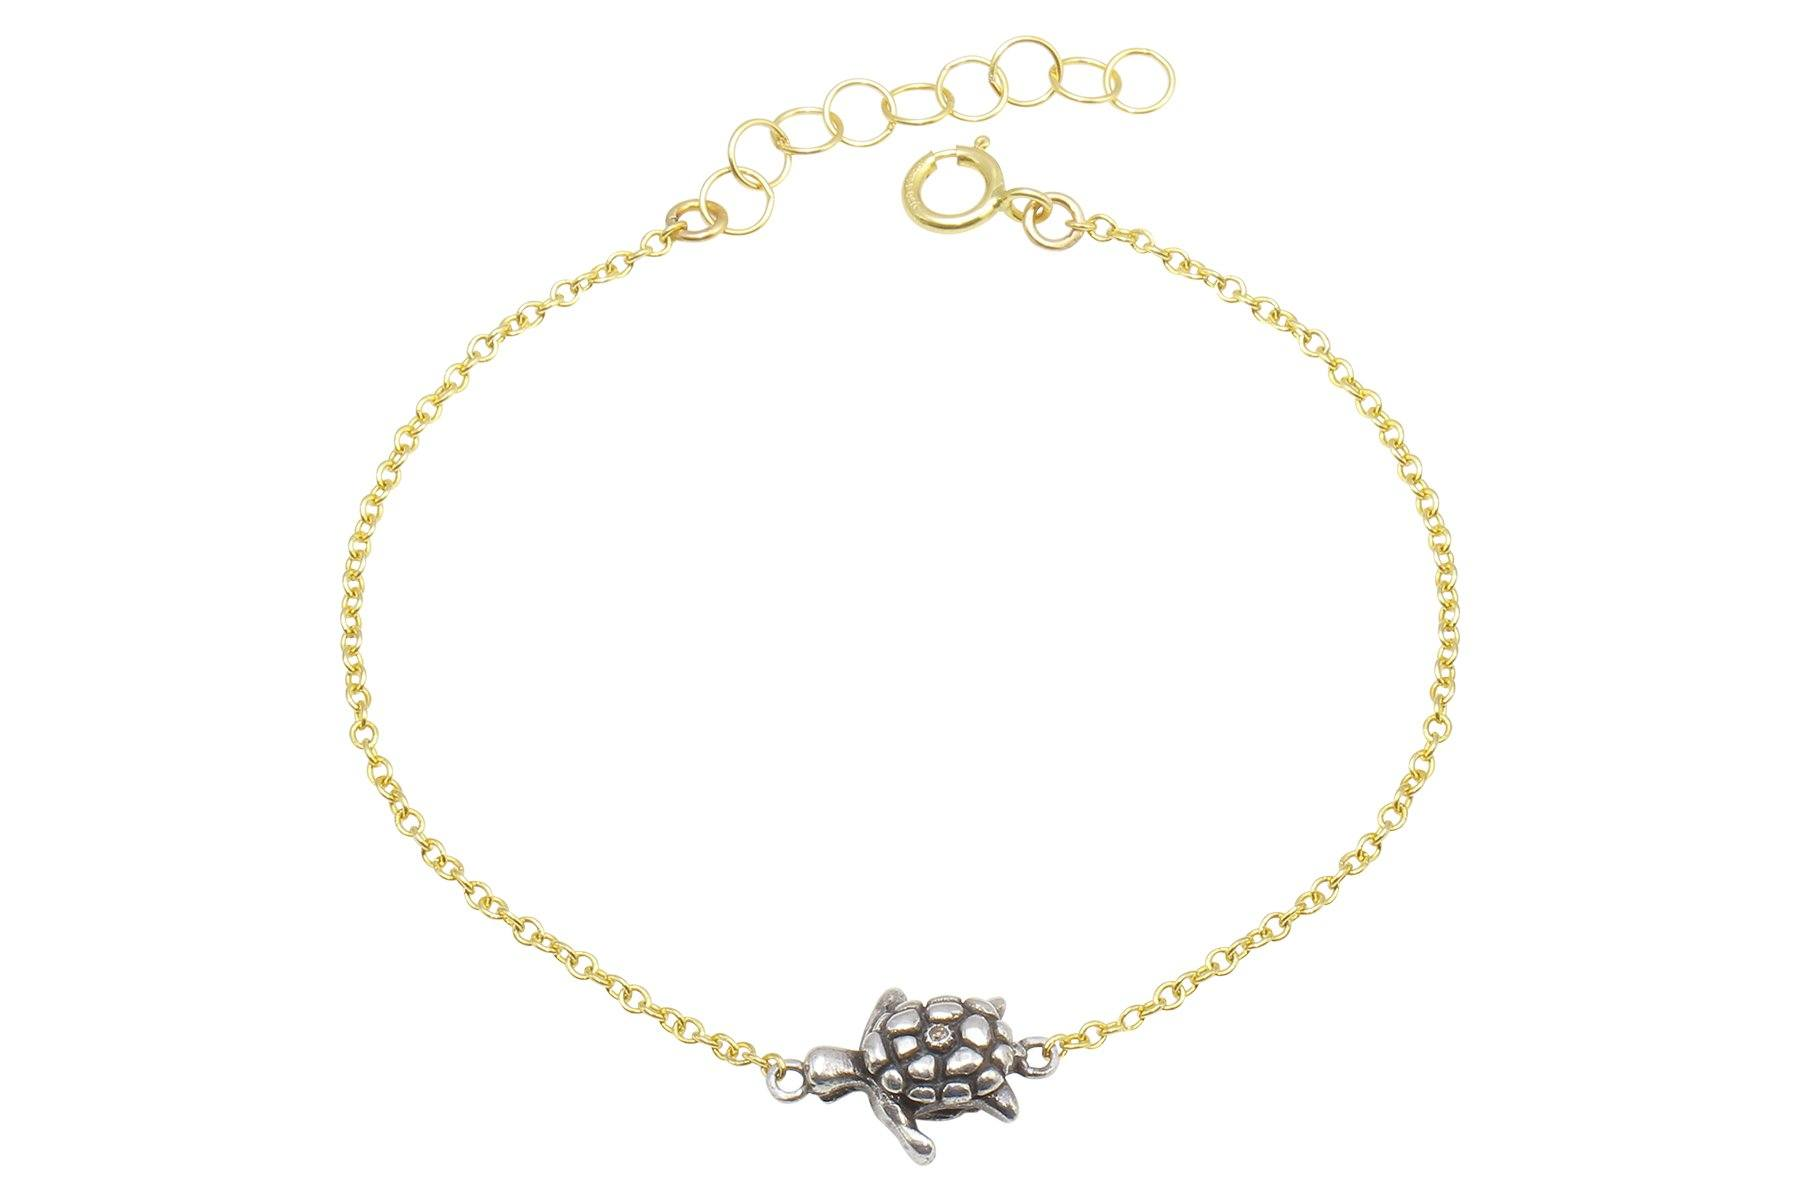 Naia diamond sea turtle bracelet // sterling silver and gold filled - Amanda K Lockrow